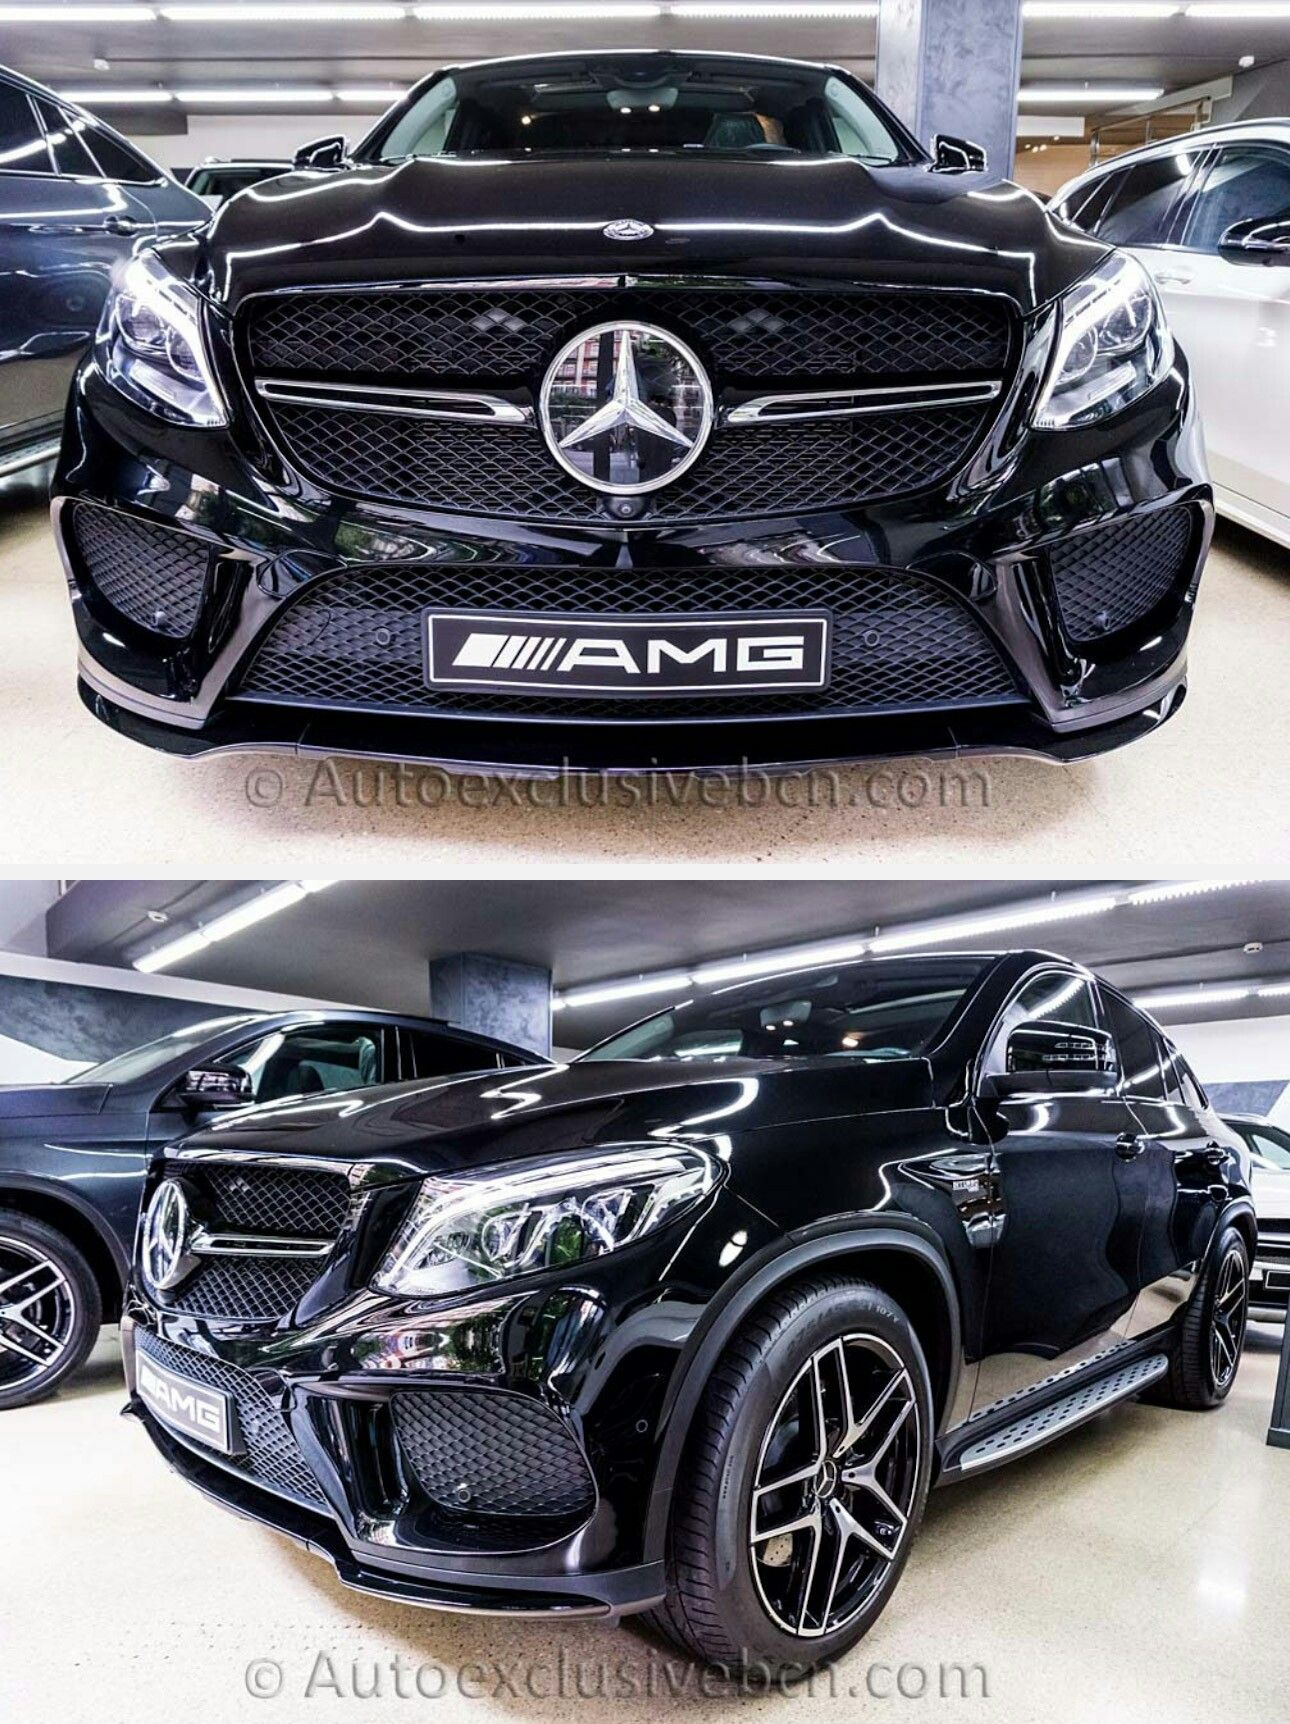 Mercedes Benz Gle 43 Amg Daily Fresh Mercedes Benz Cars